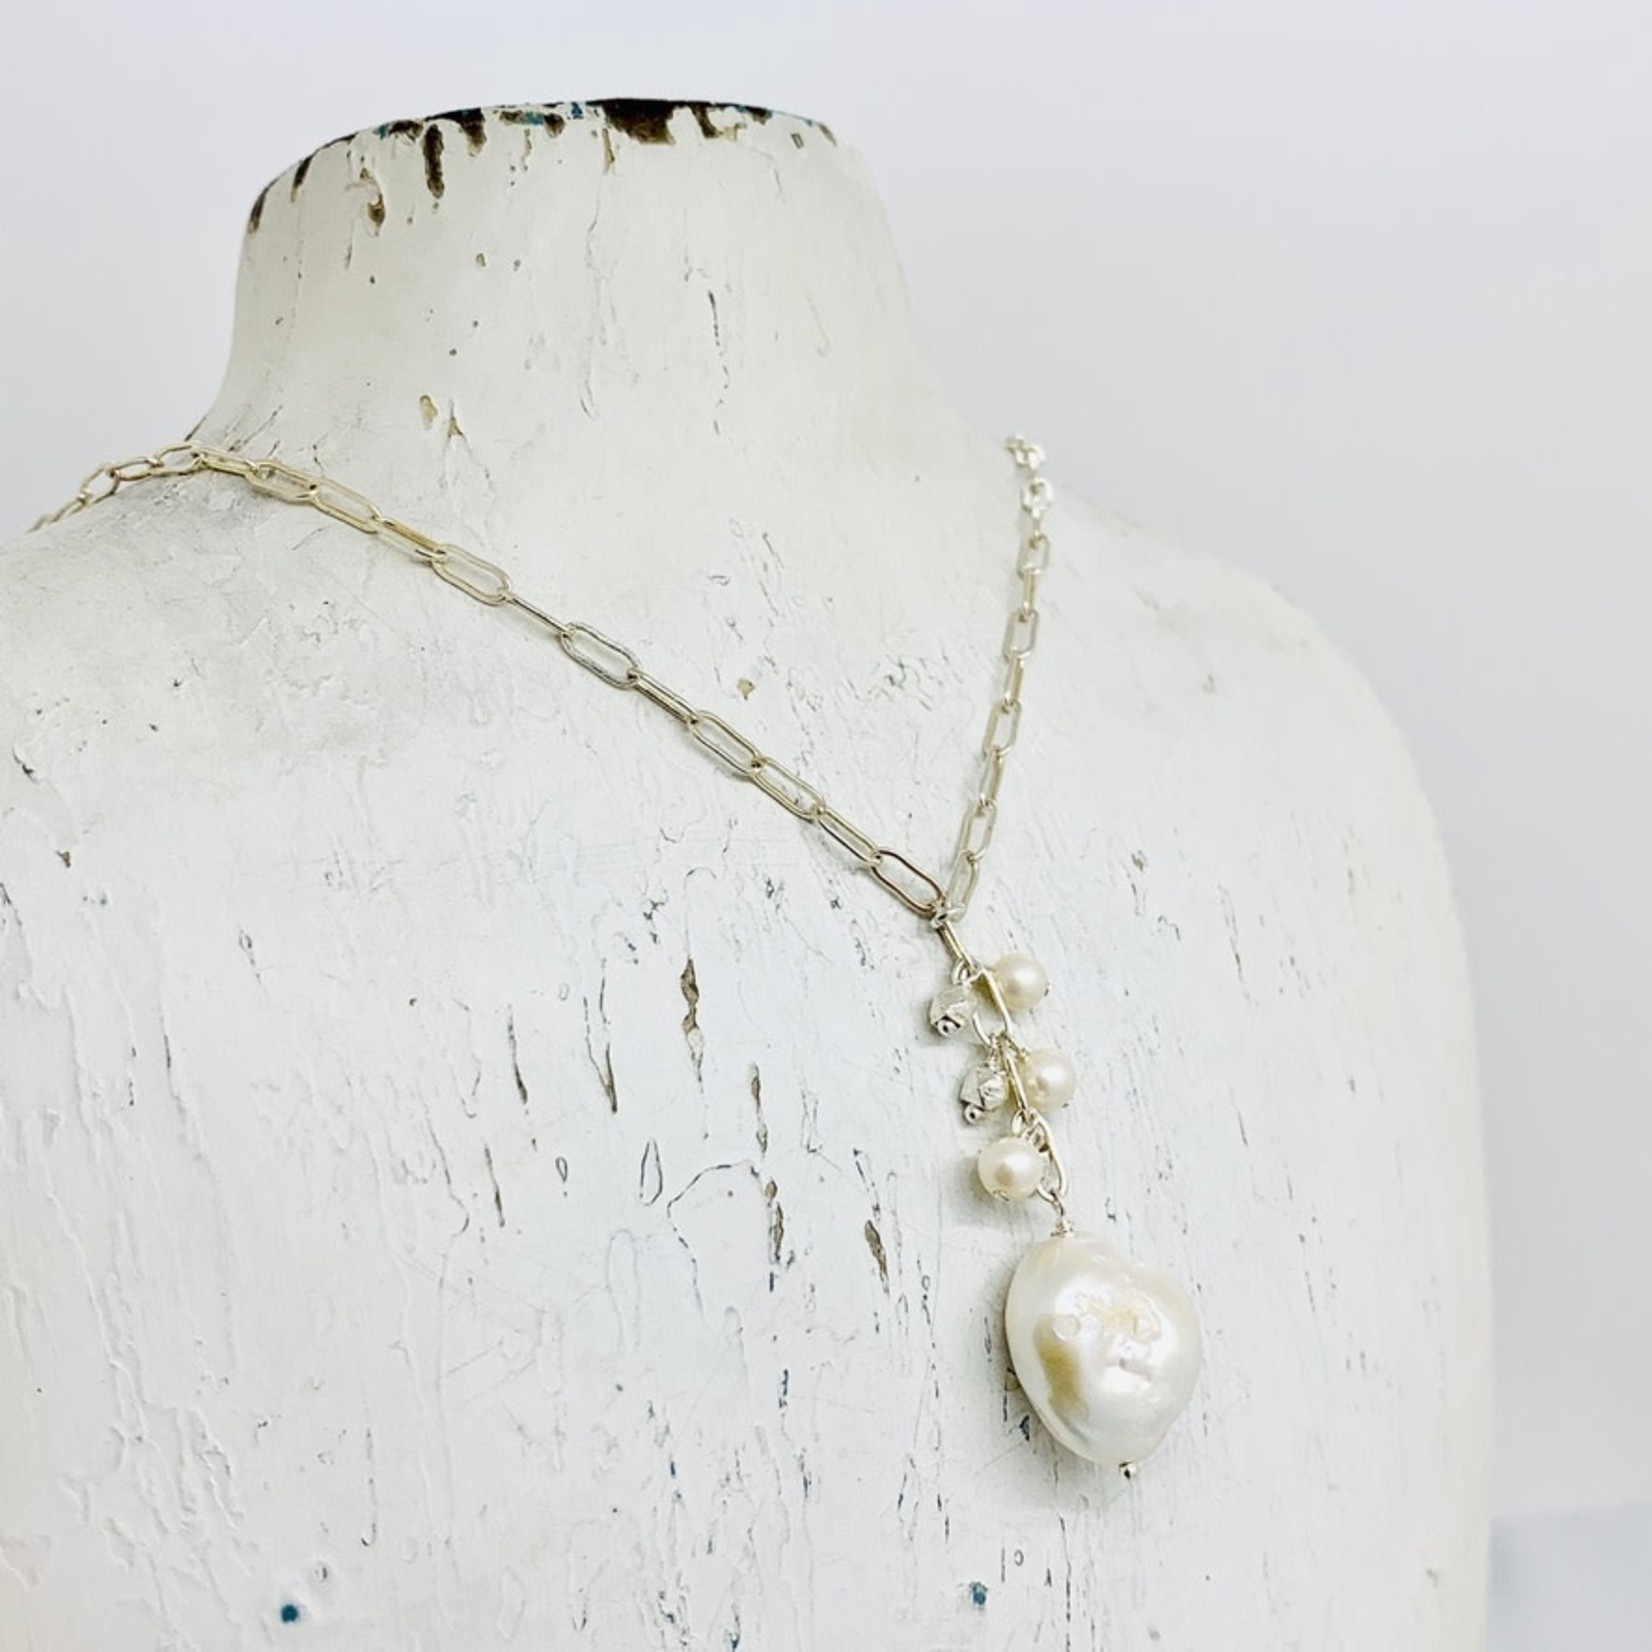 Handmade Necklace with baroque pearl, facted silver dangle, large oval chain